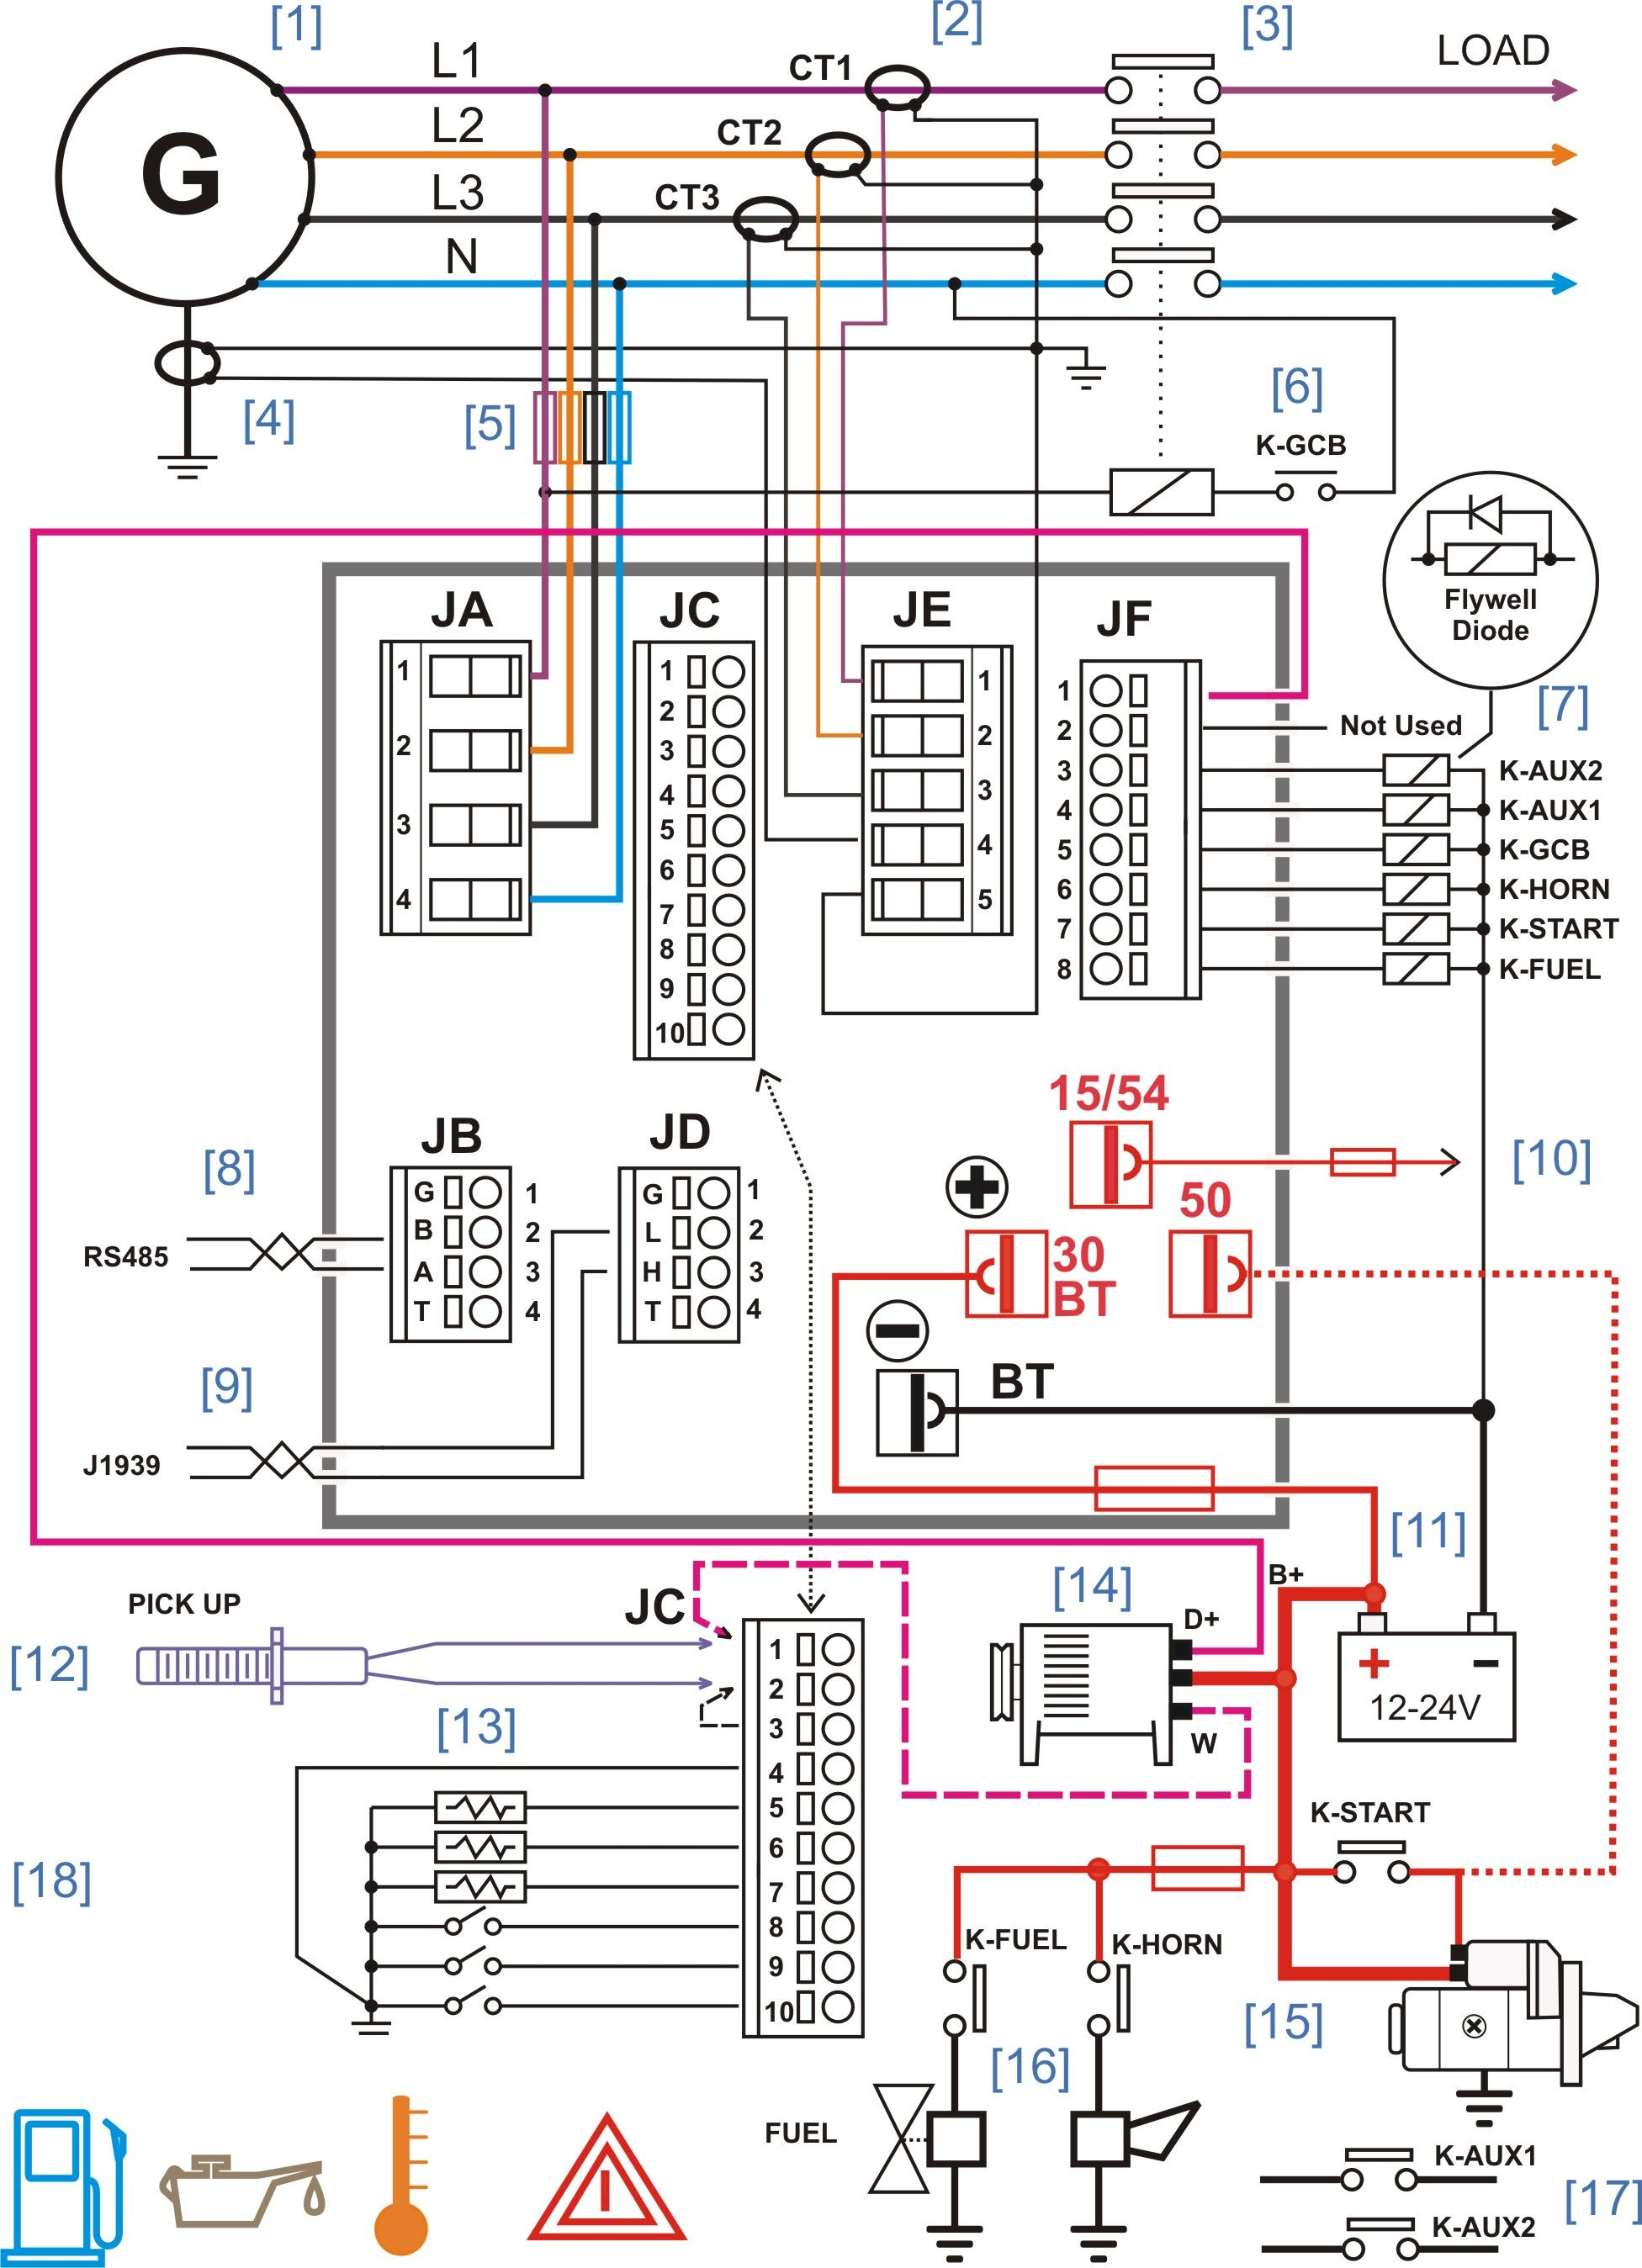 diesel generator control panel wiring diagram diesel generators rh pinterest com generator wiring diagram for farmall b generator wiring diagrams wacker